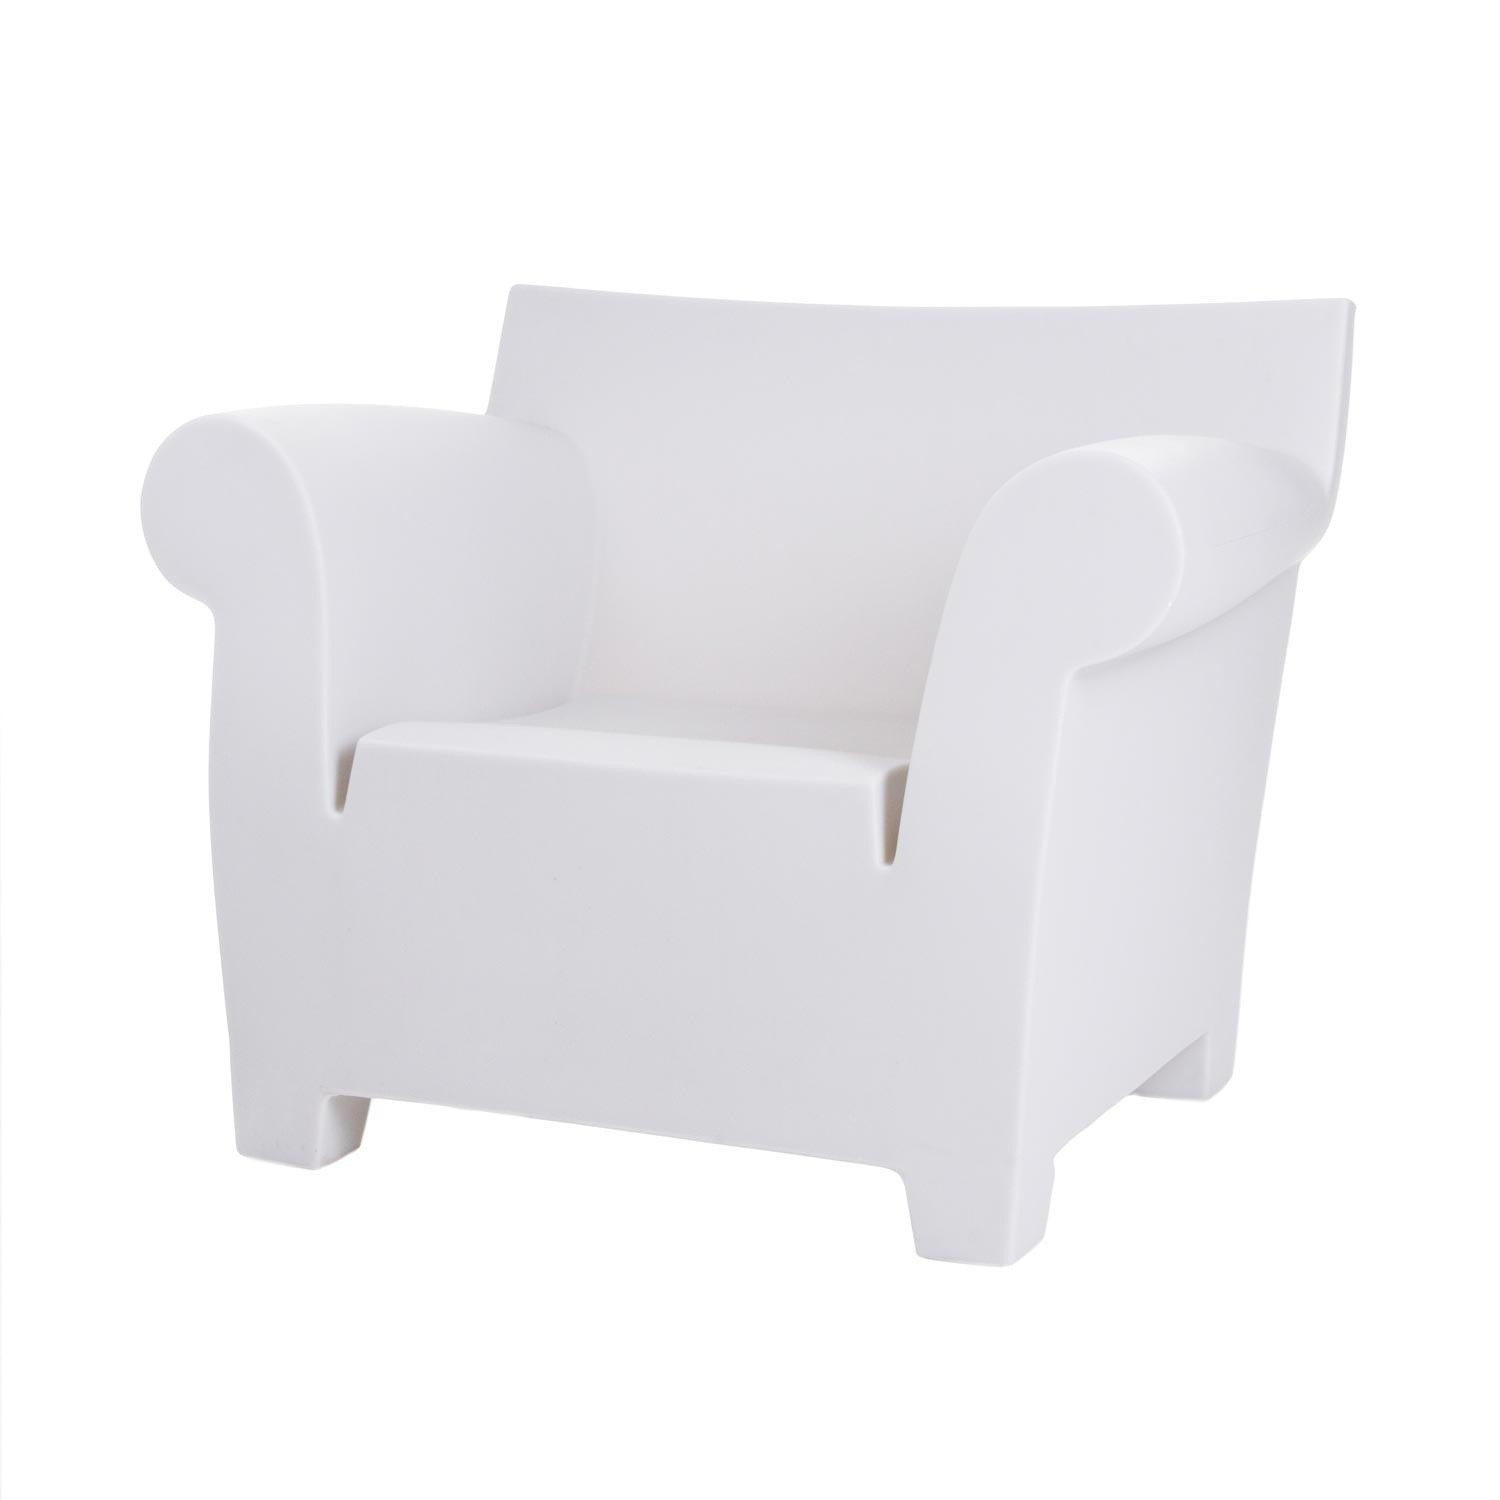 Excellent Bubble Club Armchair Promotion Set Inzonedesignstudio Interior Chair Design Inzonedesignstudiocom